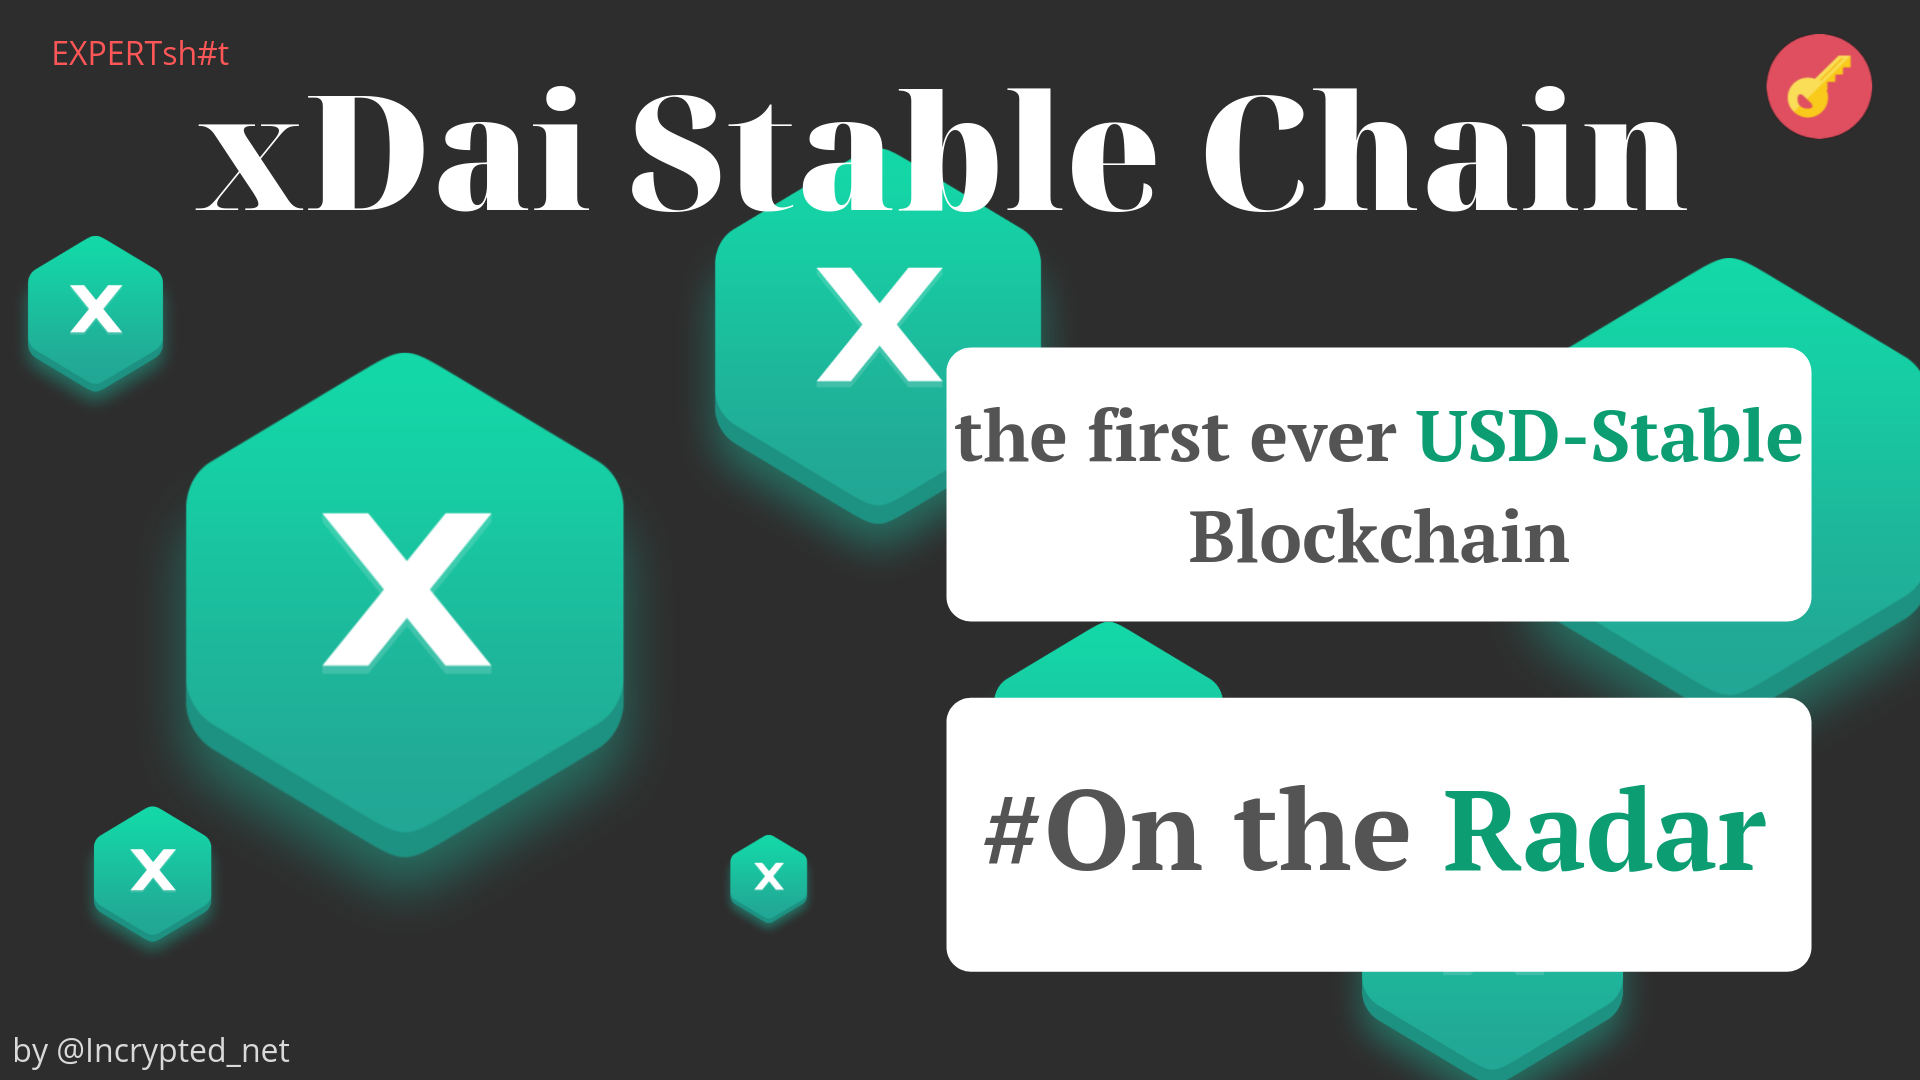 xDai Stable chain [DPOS]